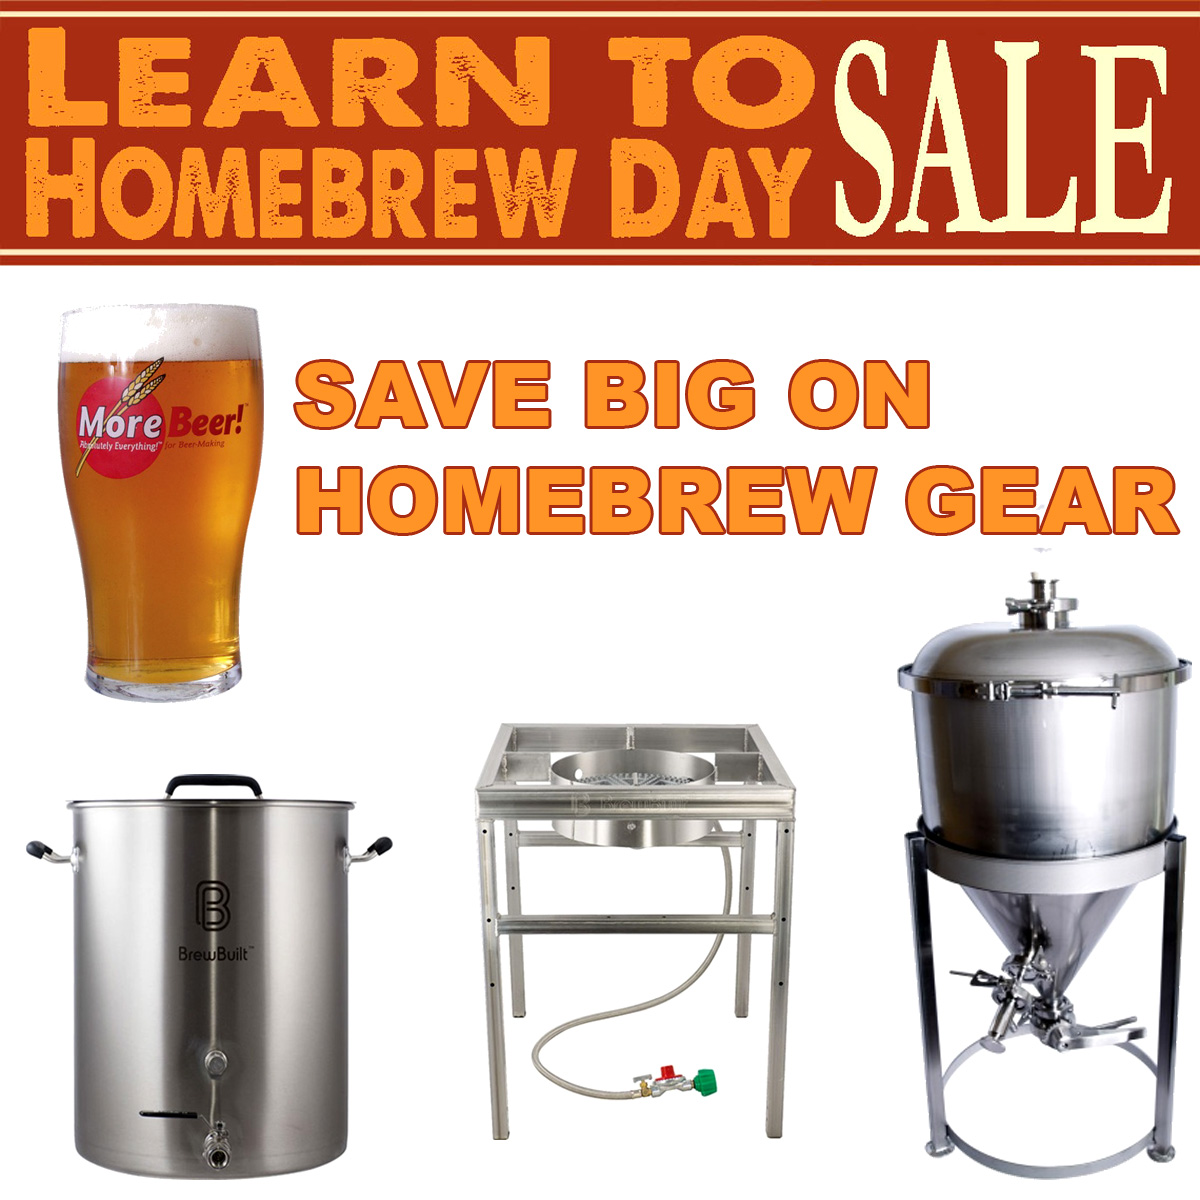 MoreBeer Save Up To 25% On Popular Home Brewing Items Coupon Code